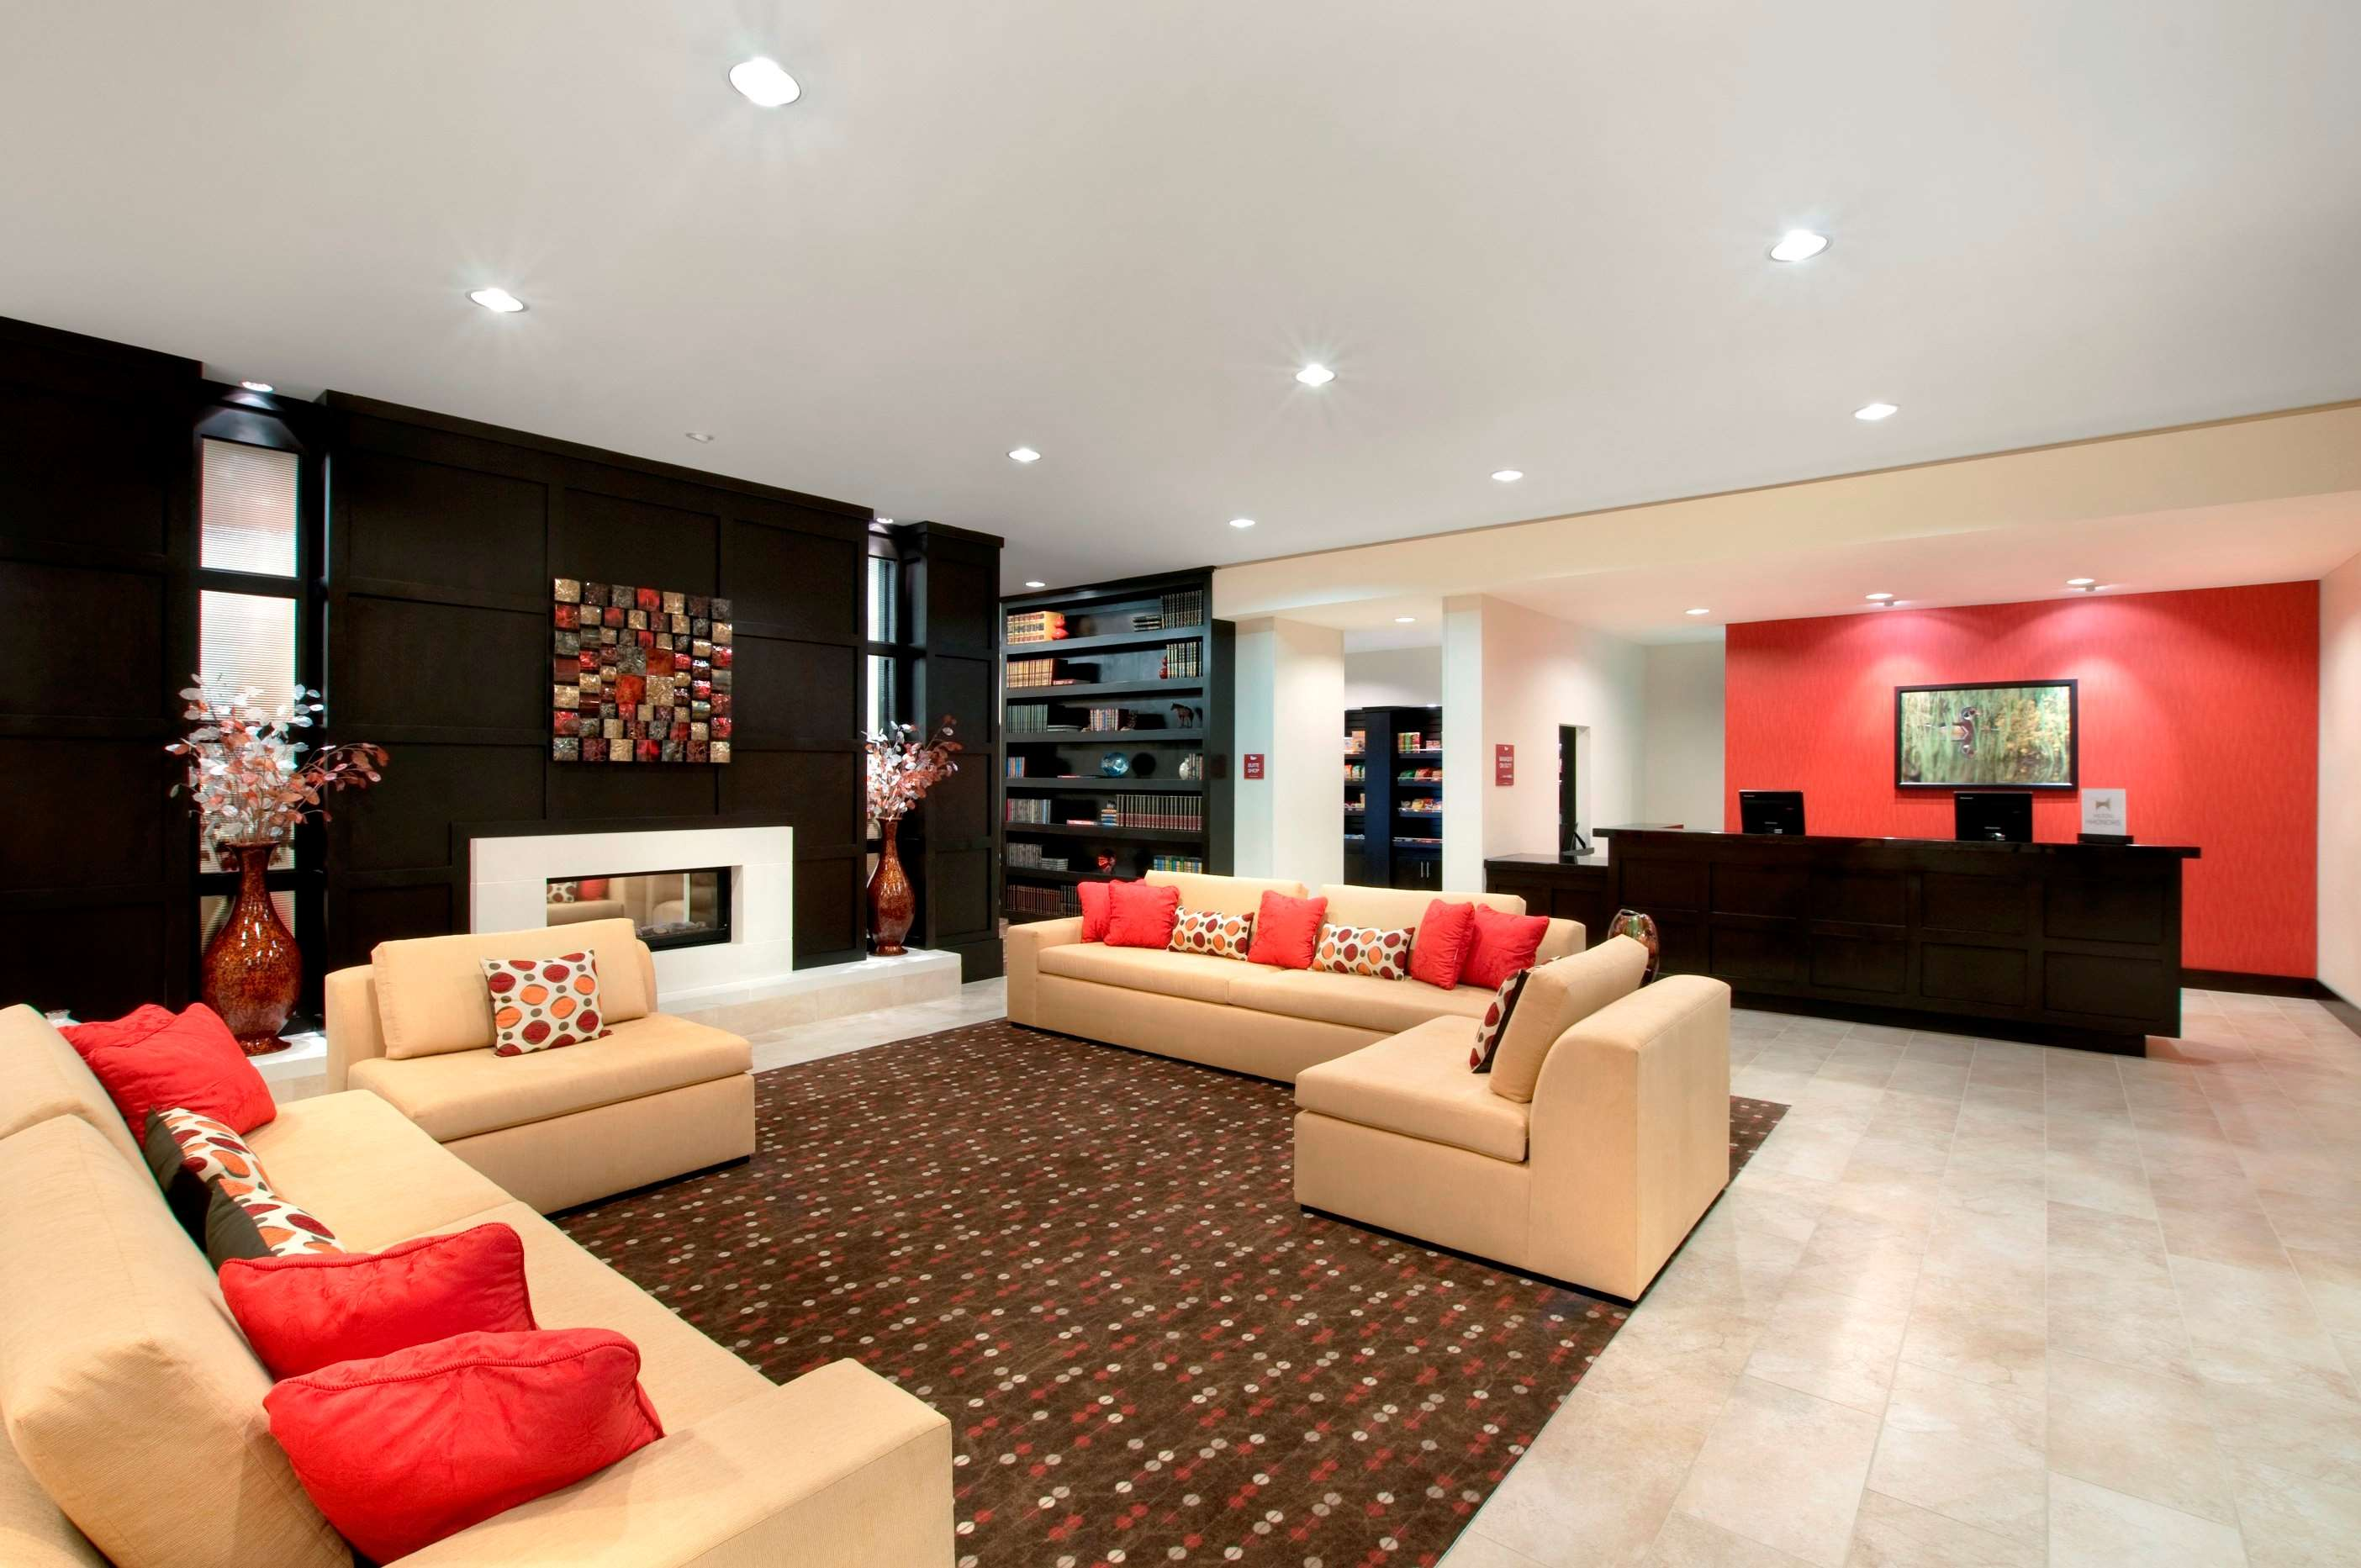 Homewood Suites by Hilton Fort Worth West at Cityview, TX image 0